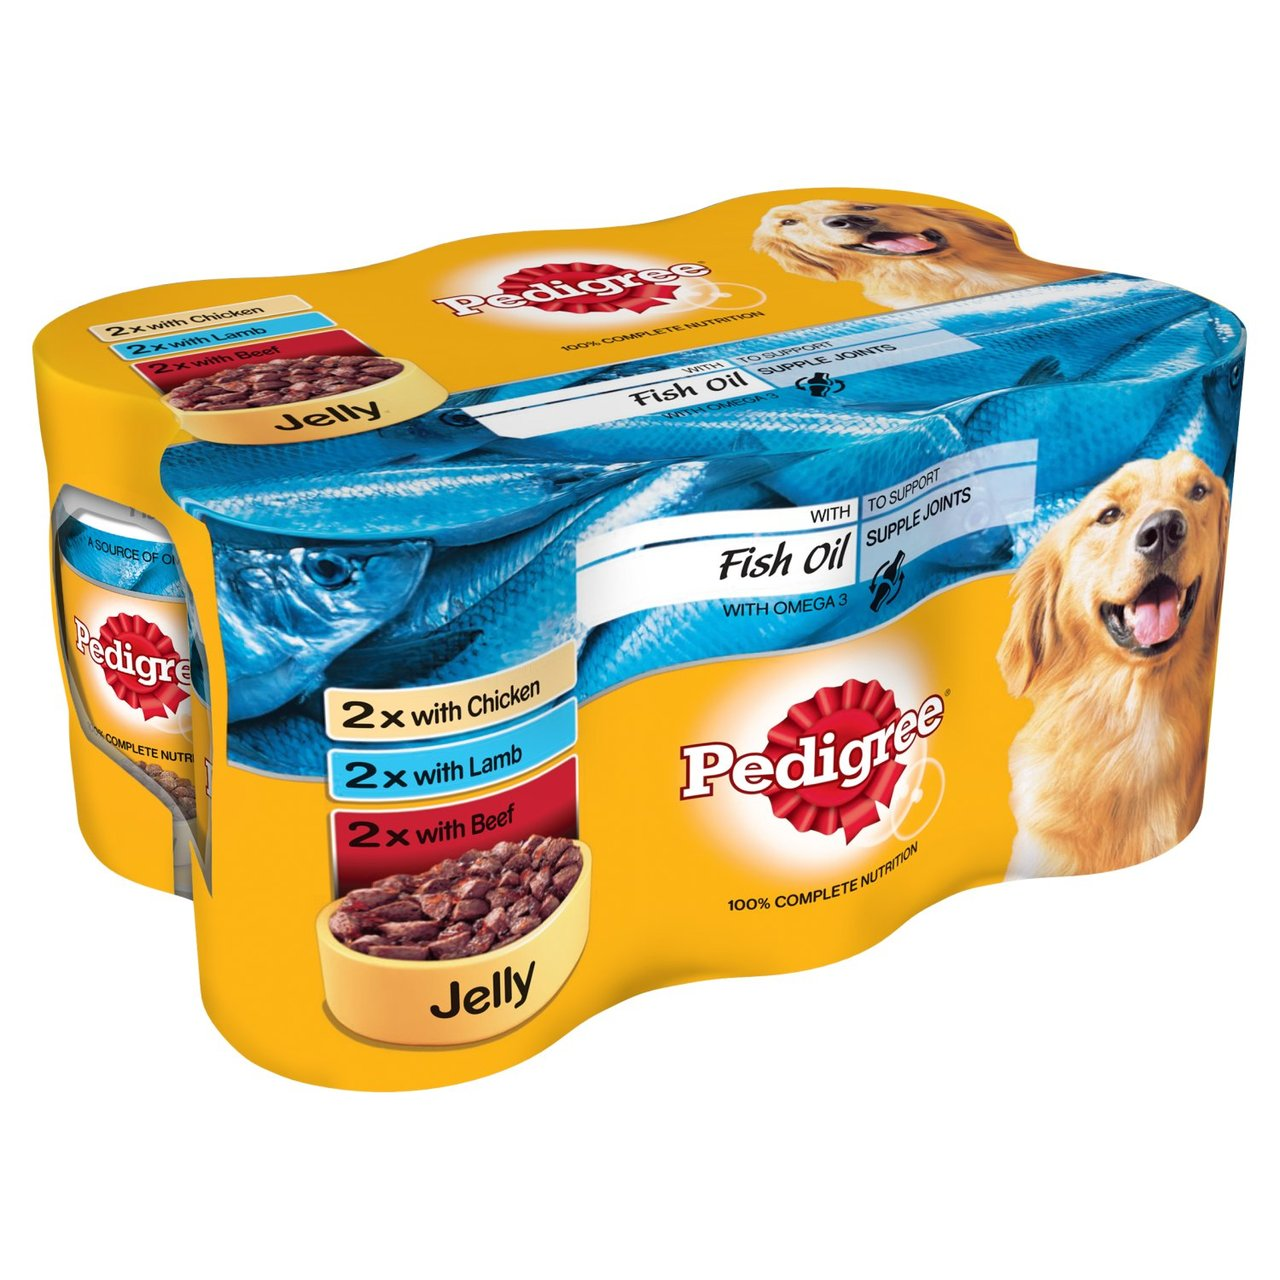 An image of Pedigree Dog Tins Meat Fish Oil in Jelly